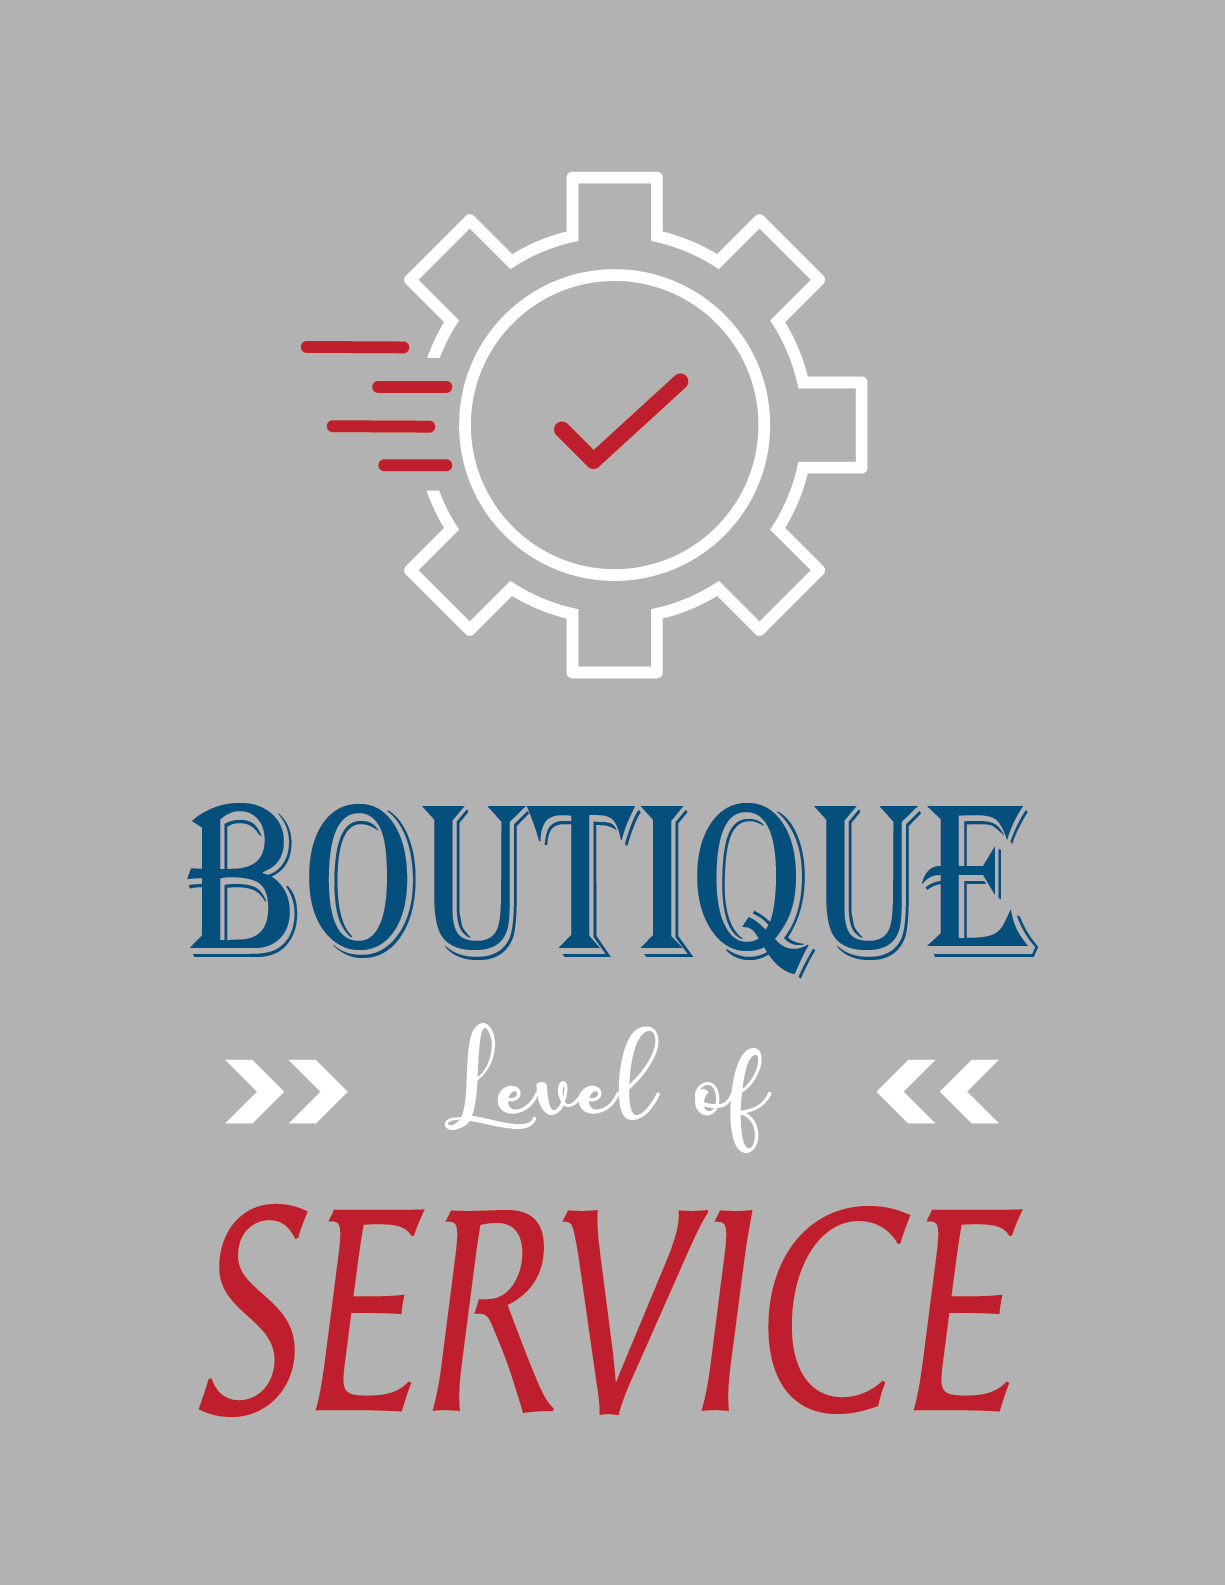 Boutique Level of Service